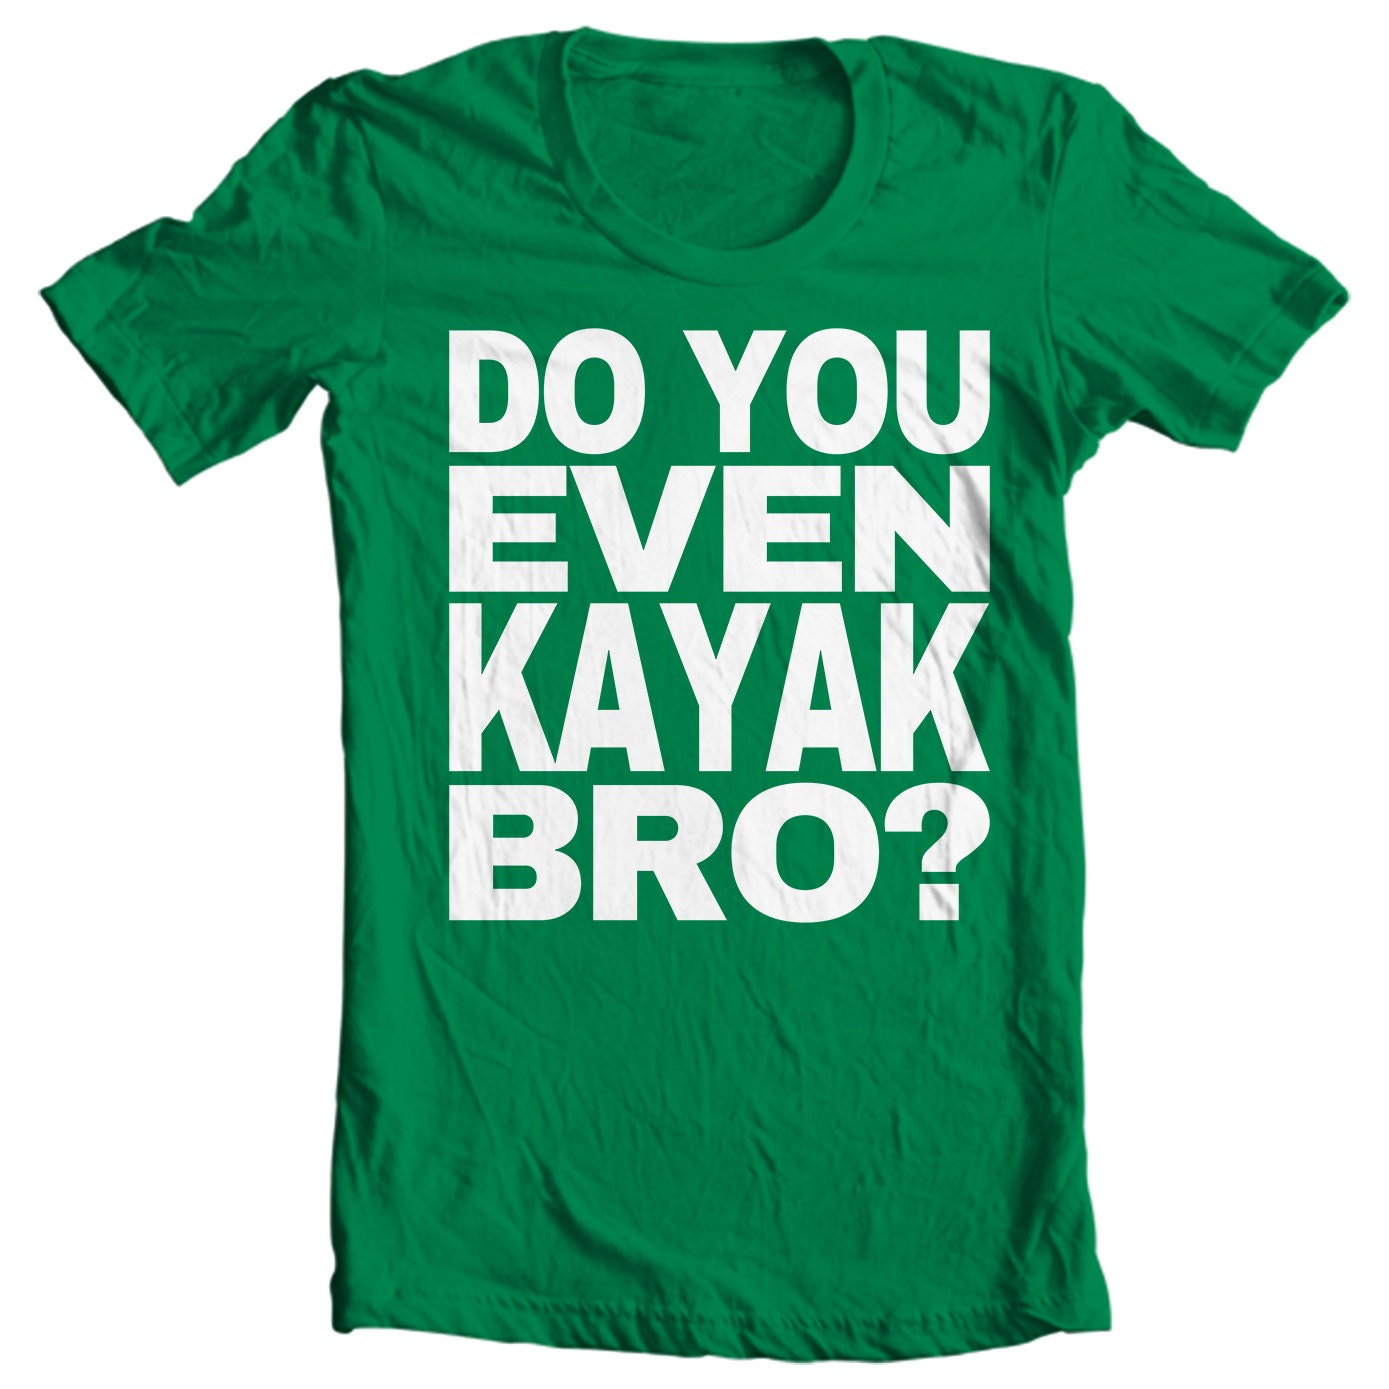 Kayaking T-shirt - Do You Even Kayak Bro? - Paddle Life Kayak T-shirt